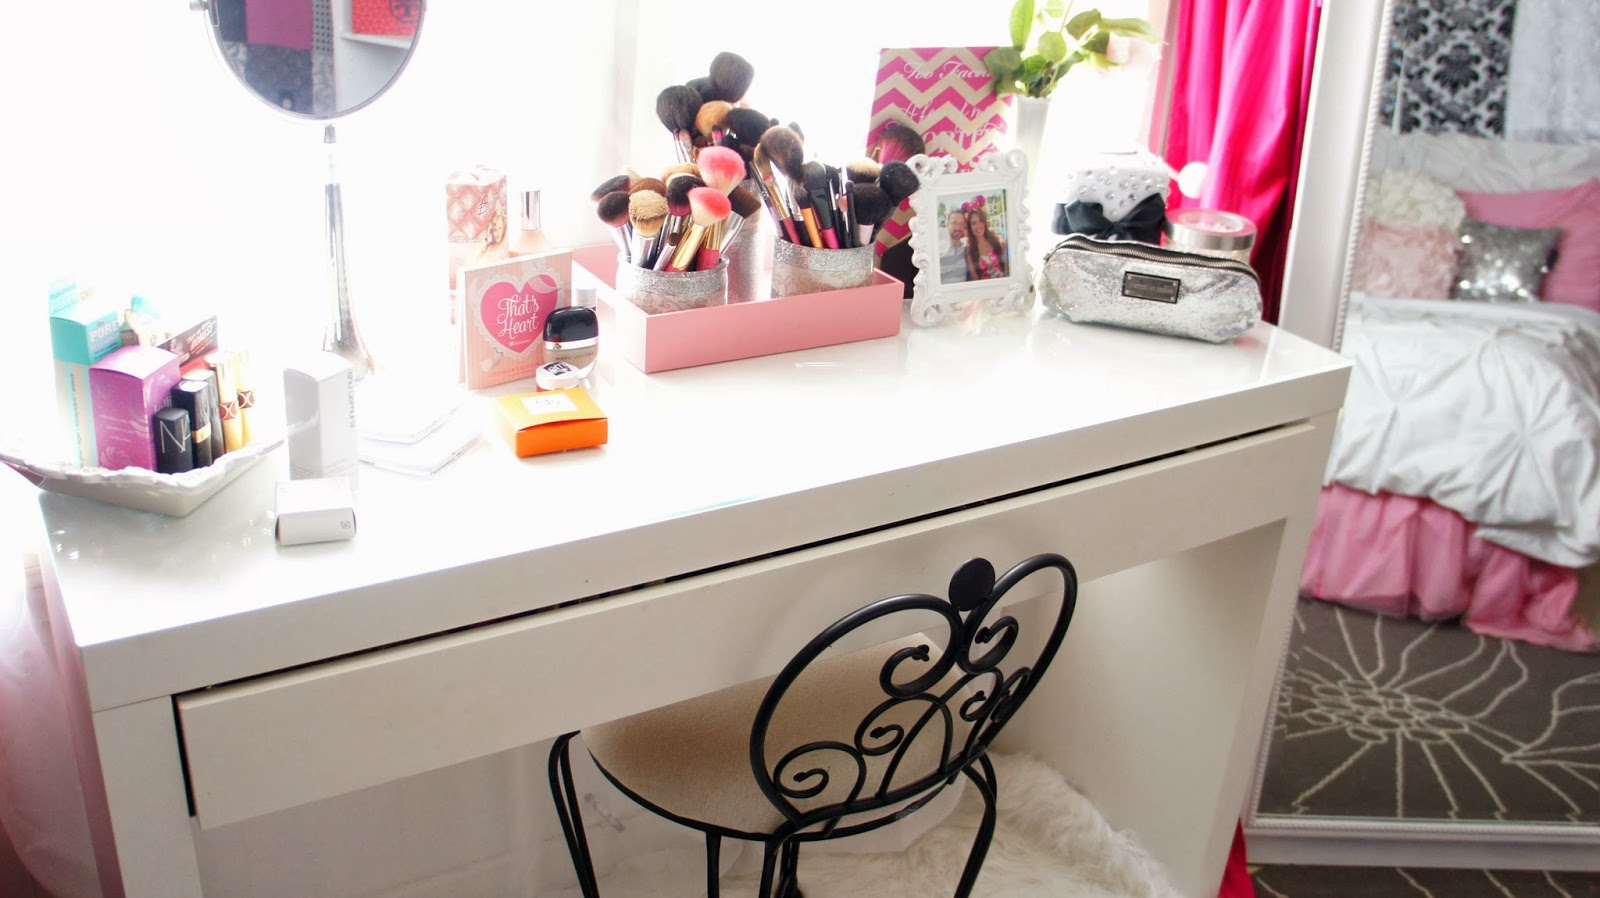 Design Ideas For A Small Bathroom Belindaselene Glam Vanity And Makeup Collection